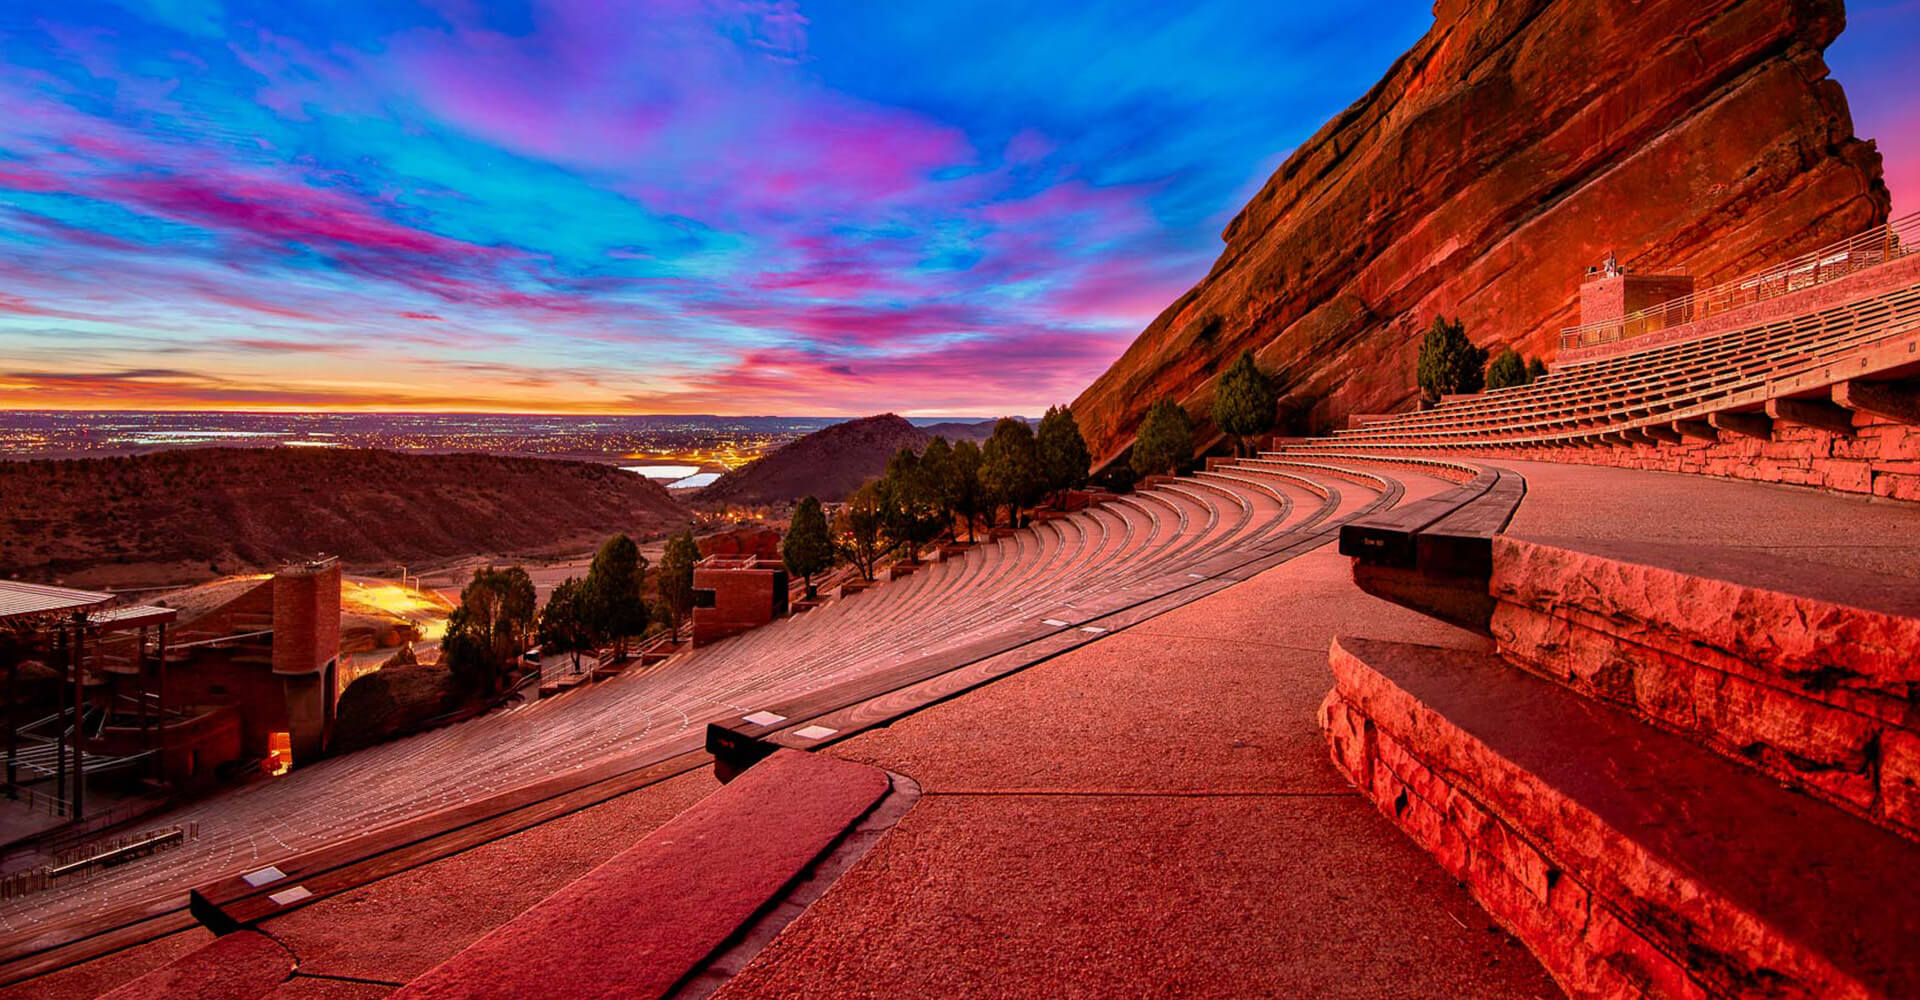 red rocks with blue and pink skies